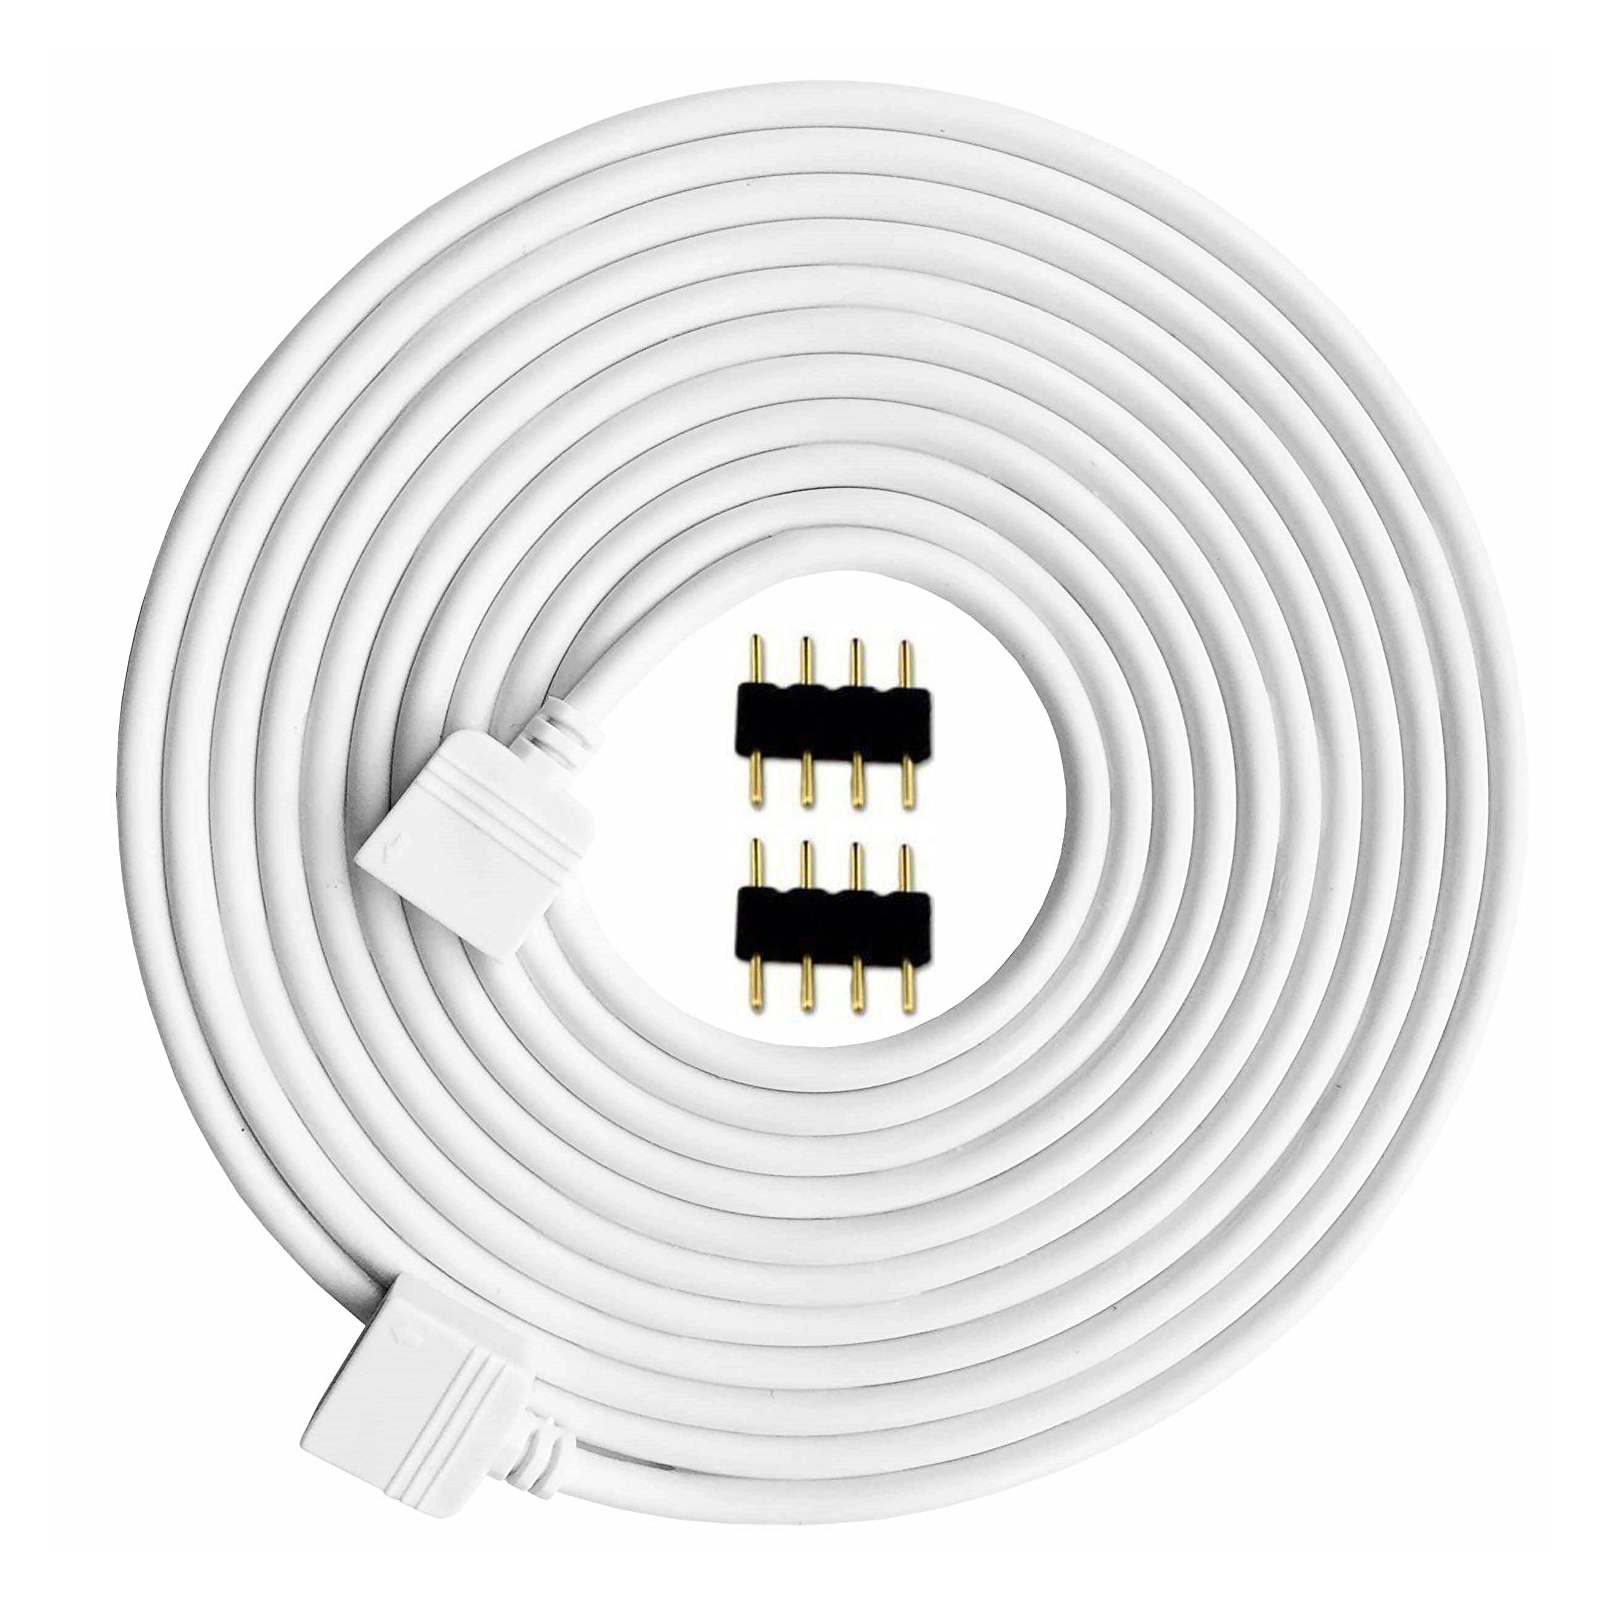 Tsv 1m 5m Led Wire Extension Cable Cord Connect 4 Pins